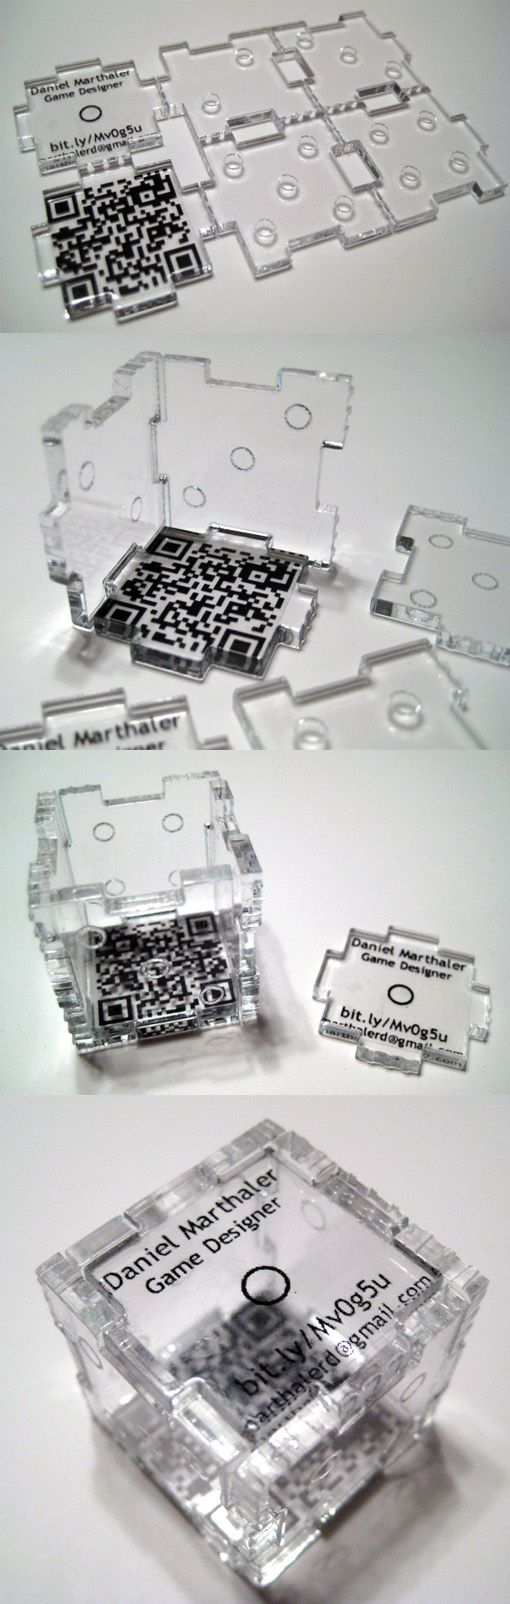 Sharra Culp and Daniel Marthaler created this acrylic business card which could be put together to make a 3 dimensional die.